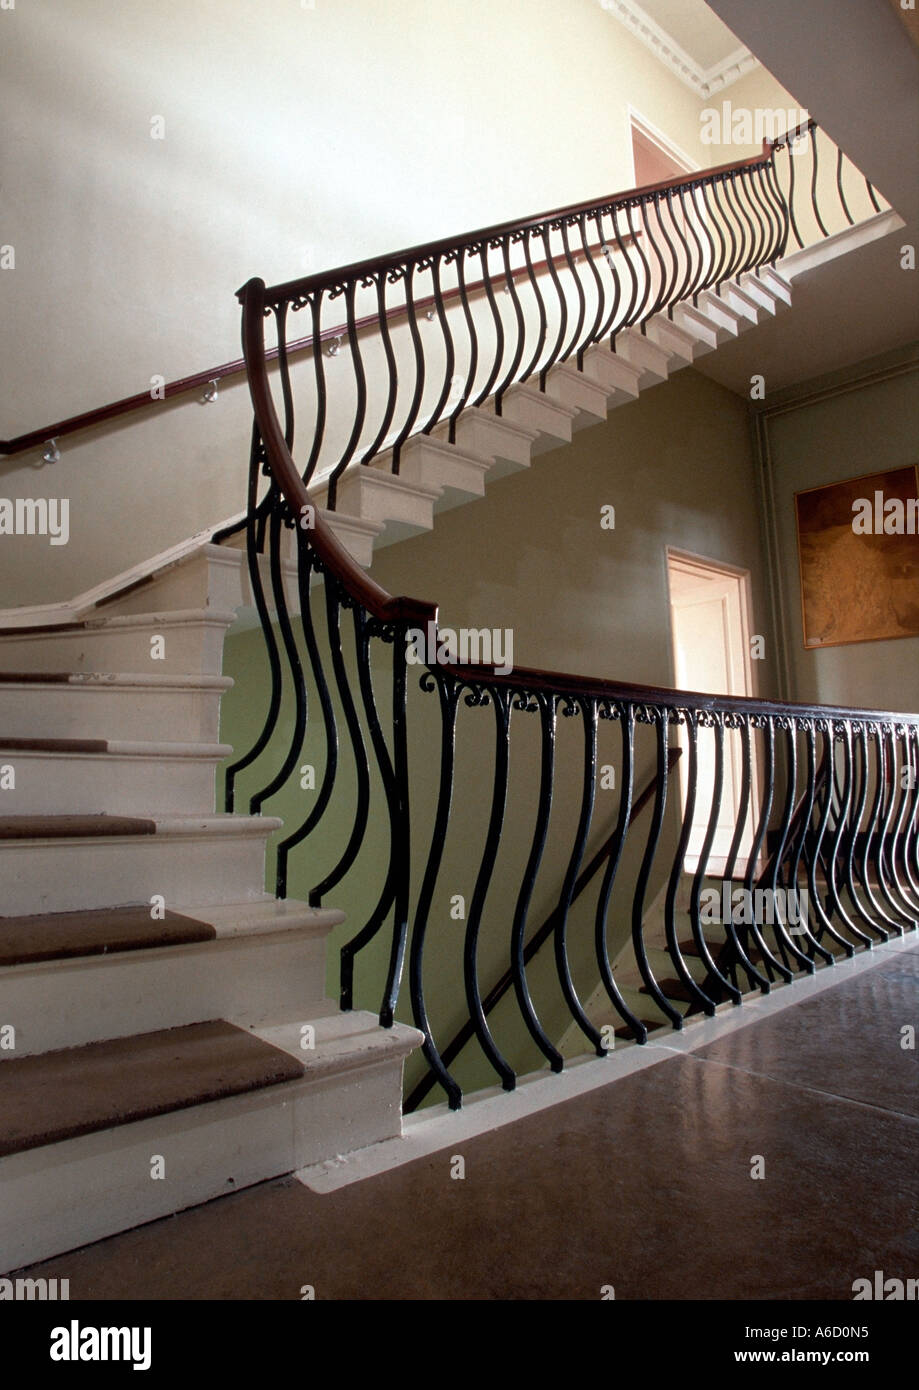 An Internal Staircase With An Cast Iron Banister Stock Photo ...